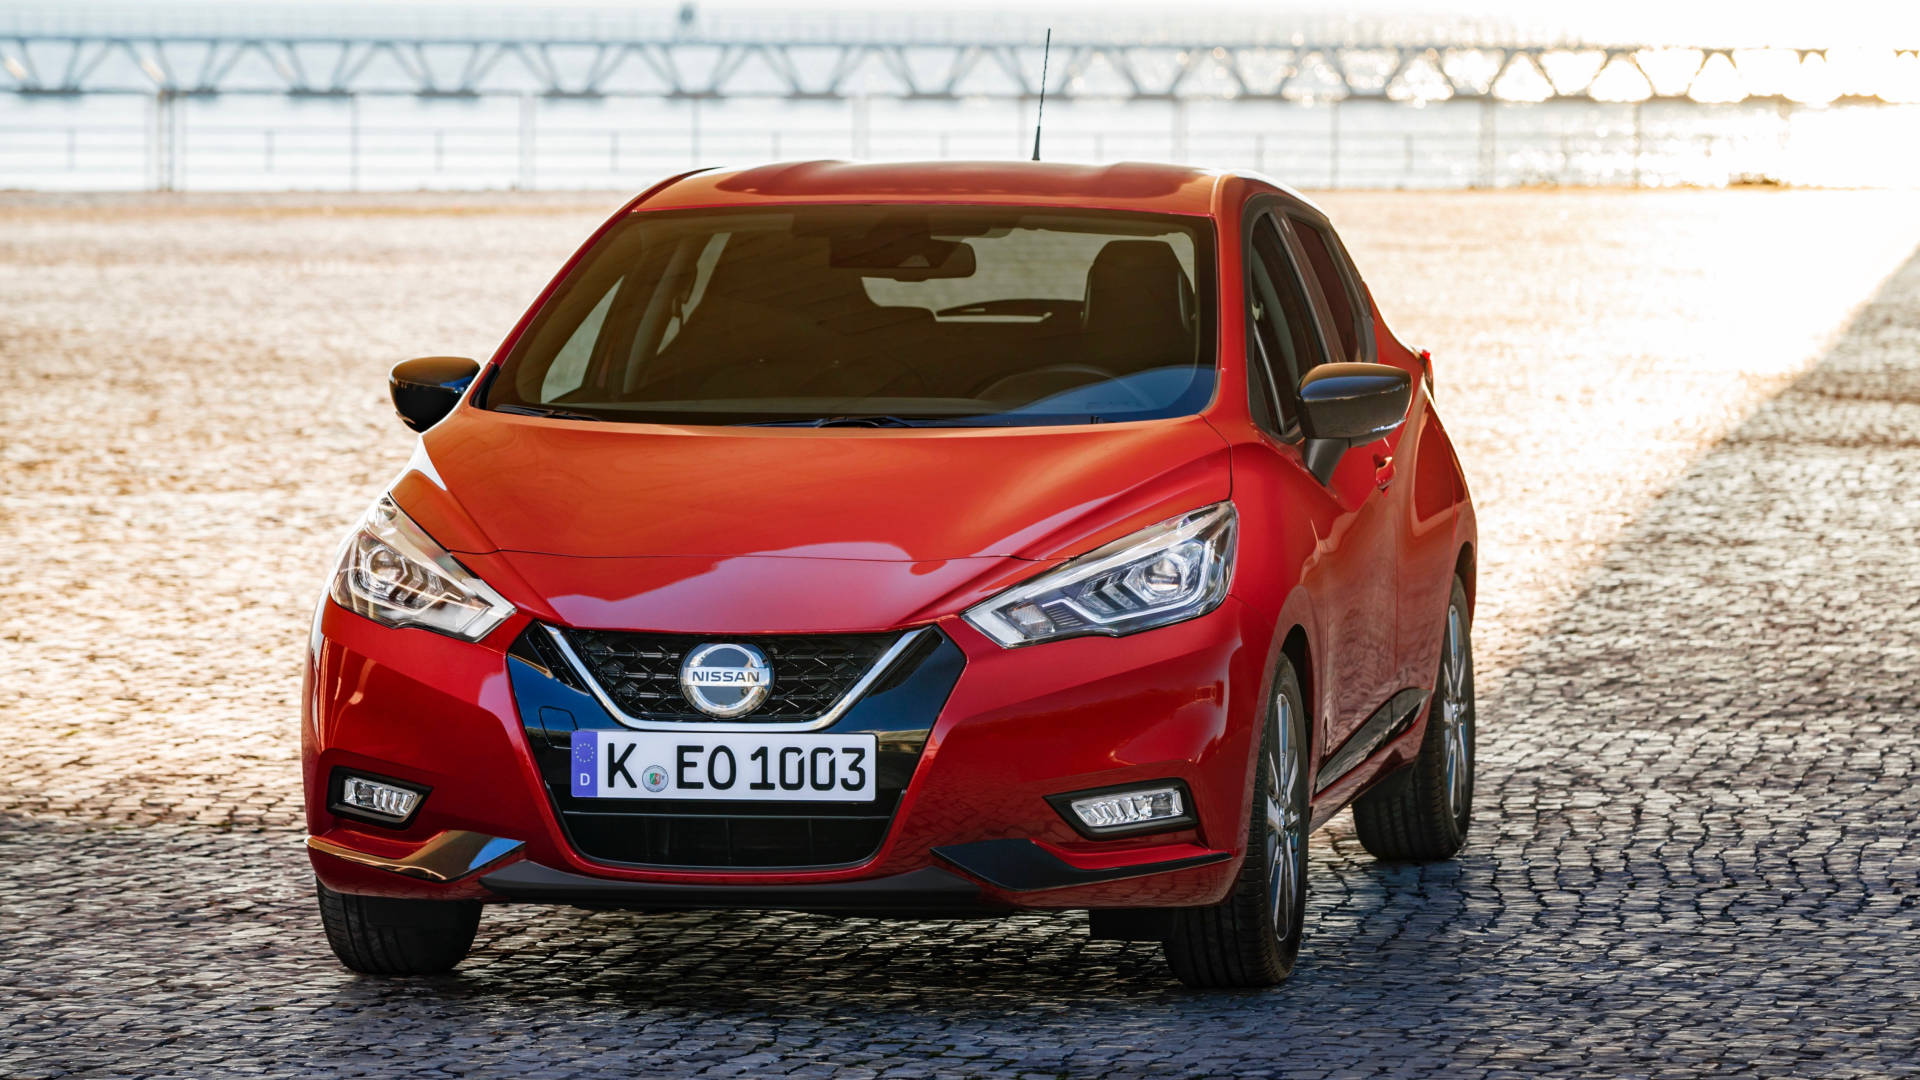 2019 Nissan Micra front 3/4